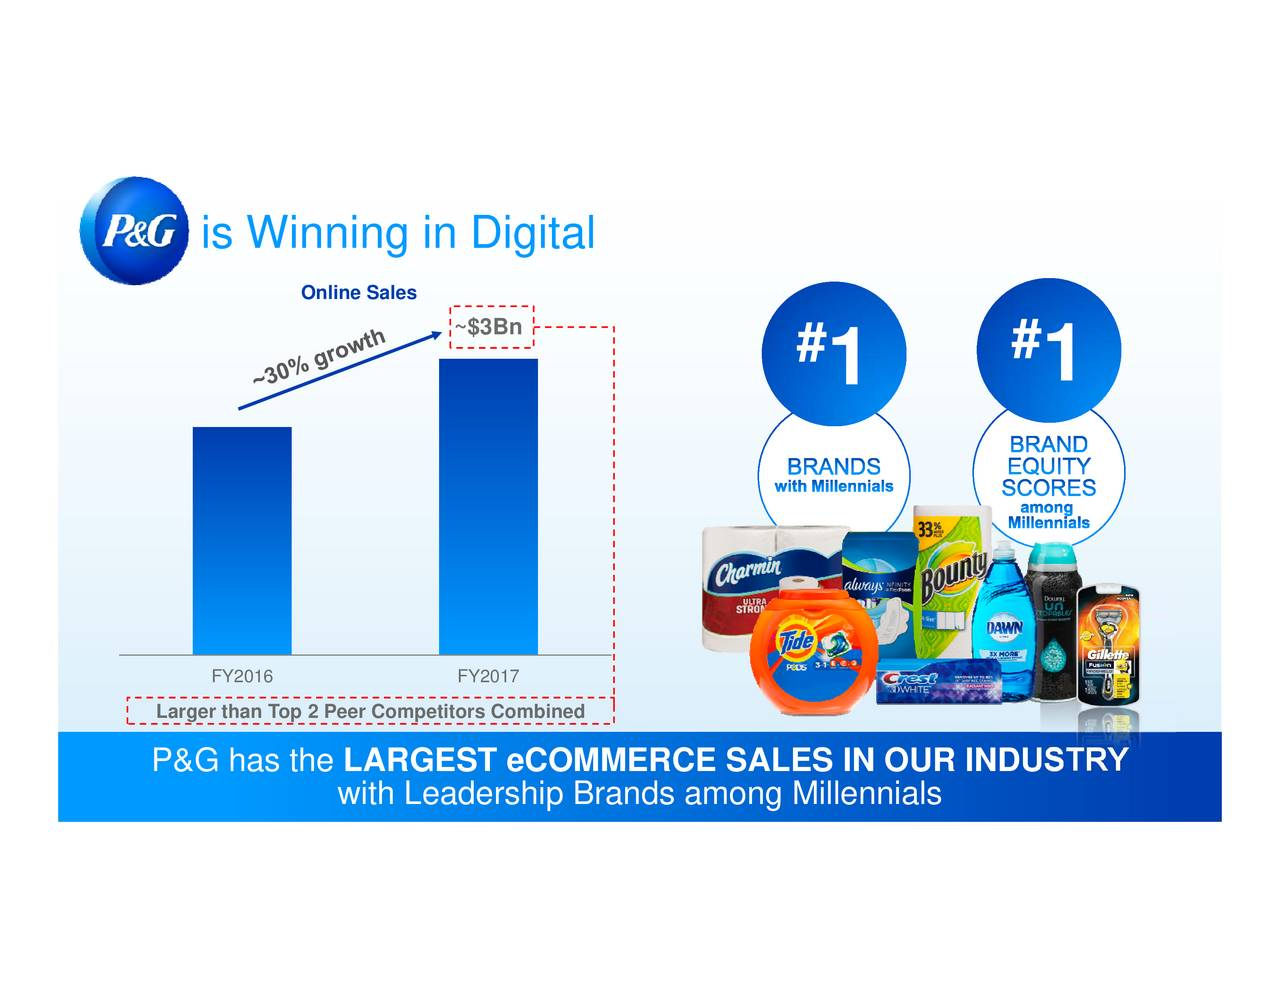 procter and gamble brand equity